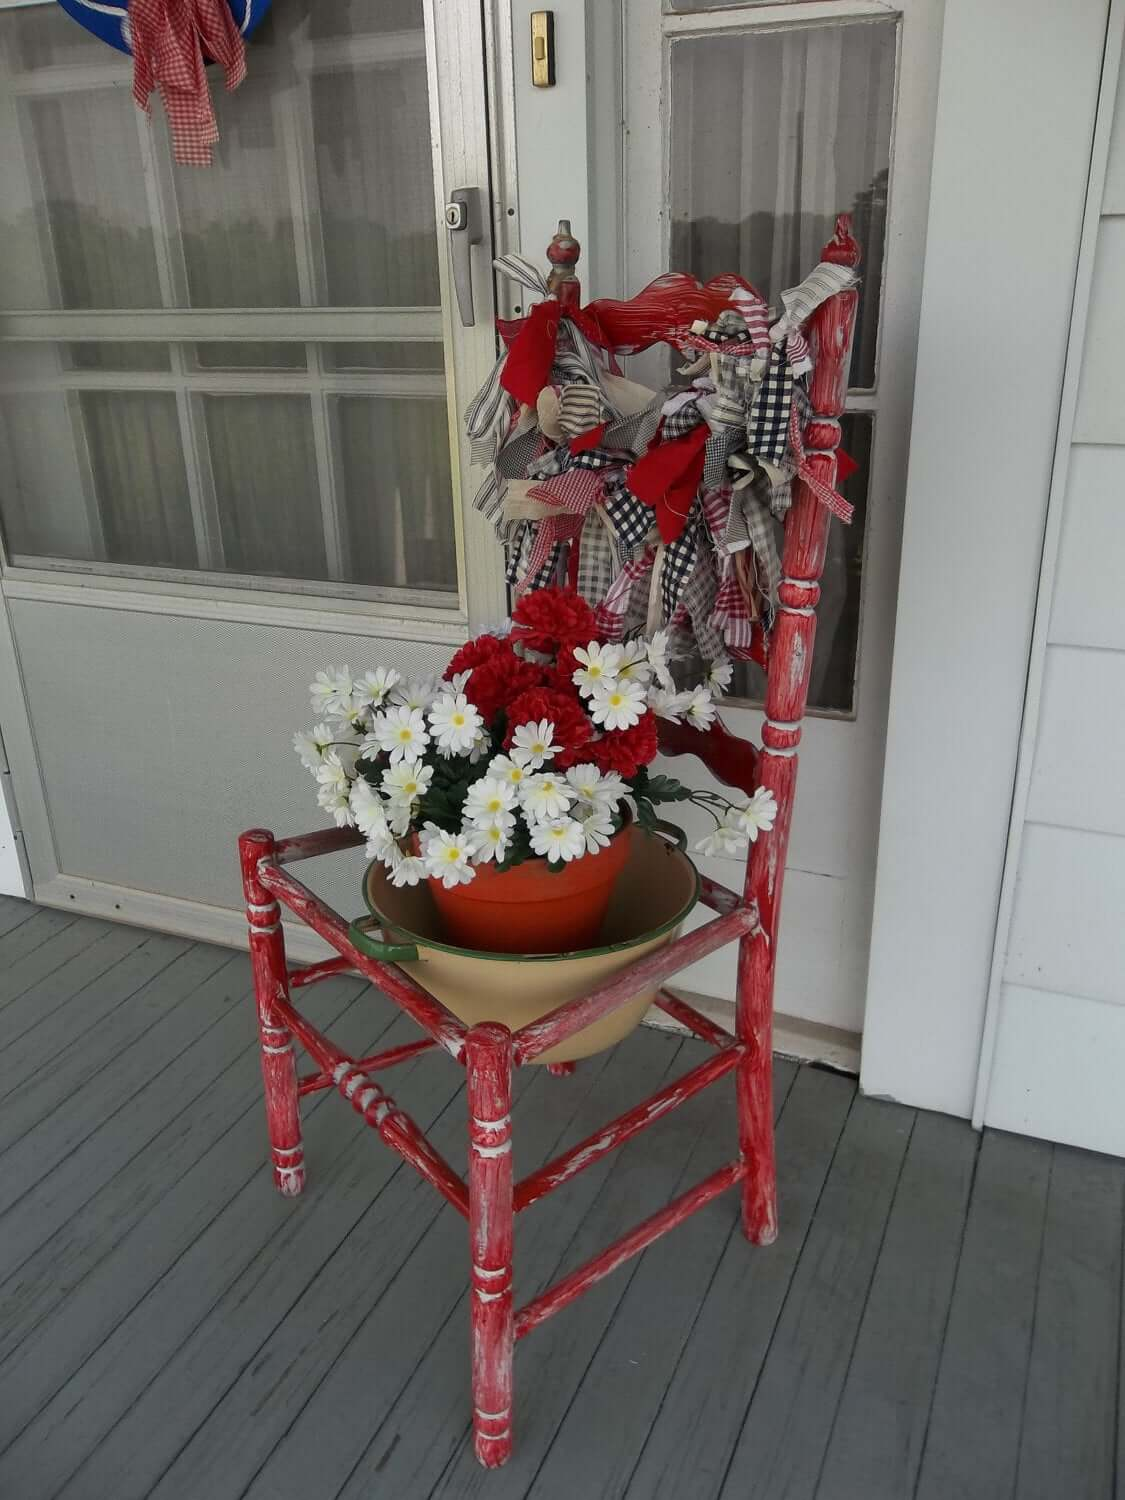 Patriotic Red White and Blue Chair Garland